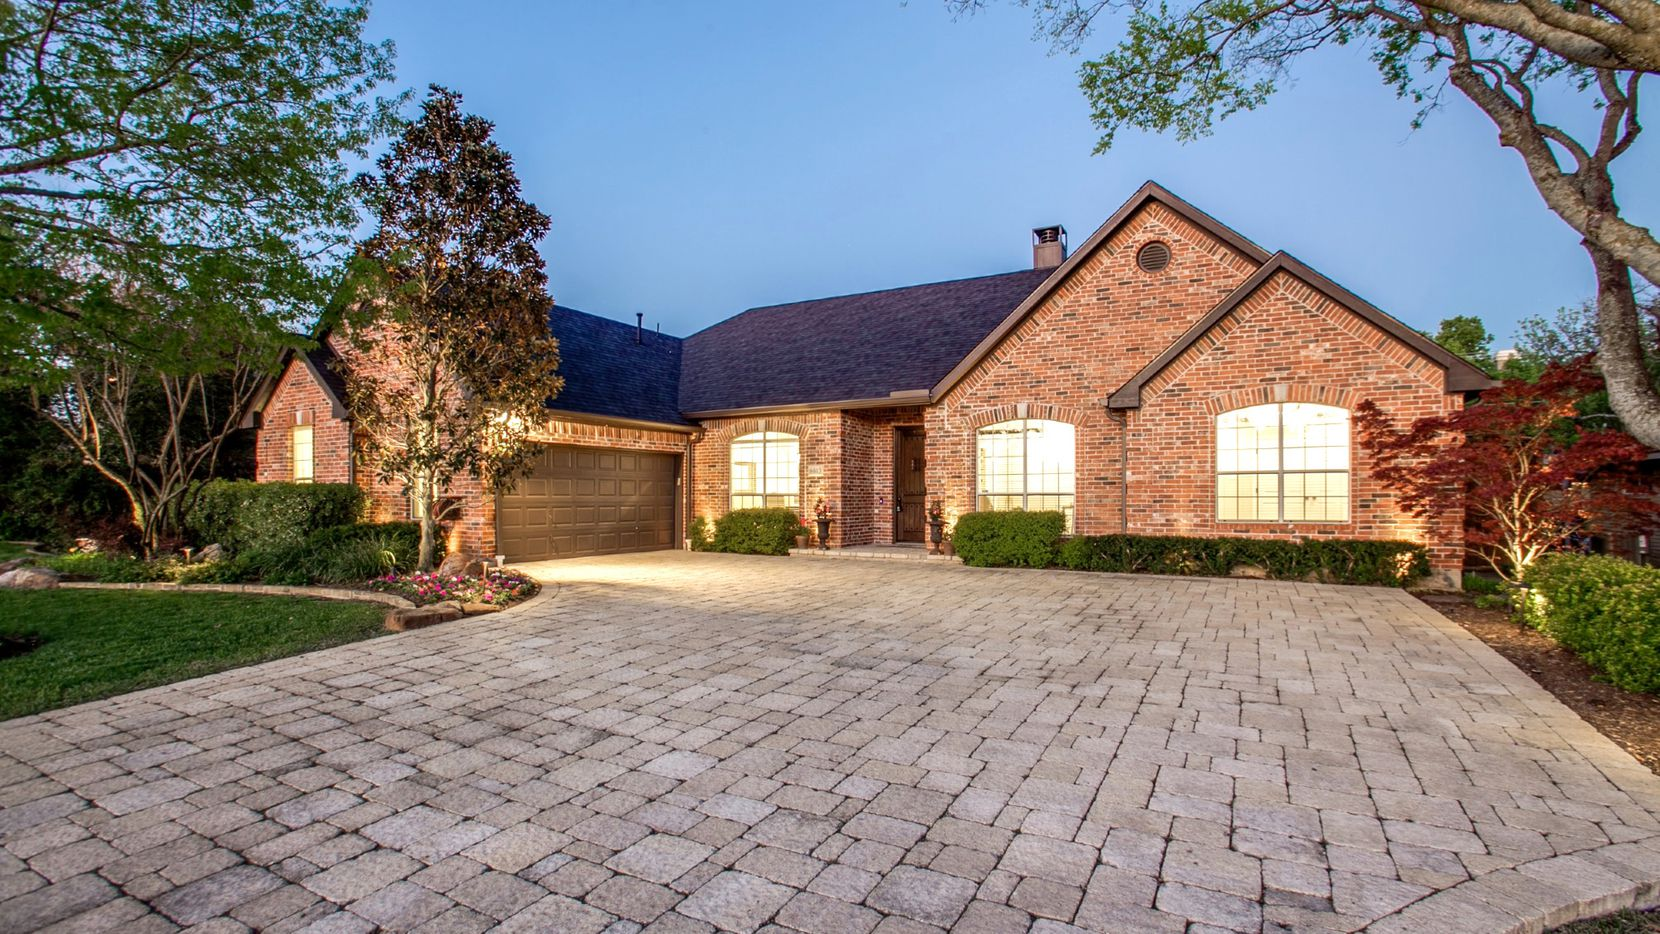 Tour the traditional-style home at 6613 Villa Road in North Dallas from 2 to 4 p.m. on July 19.